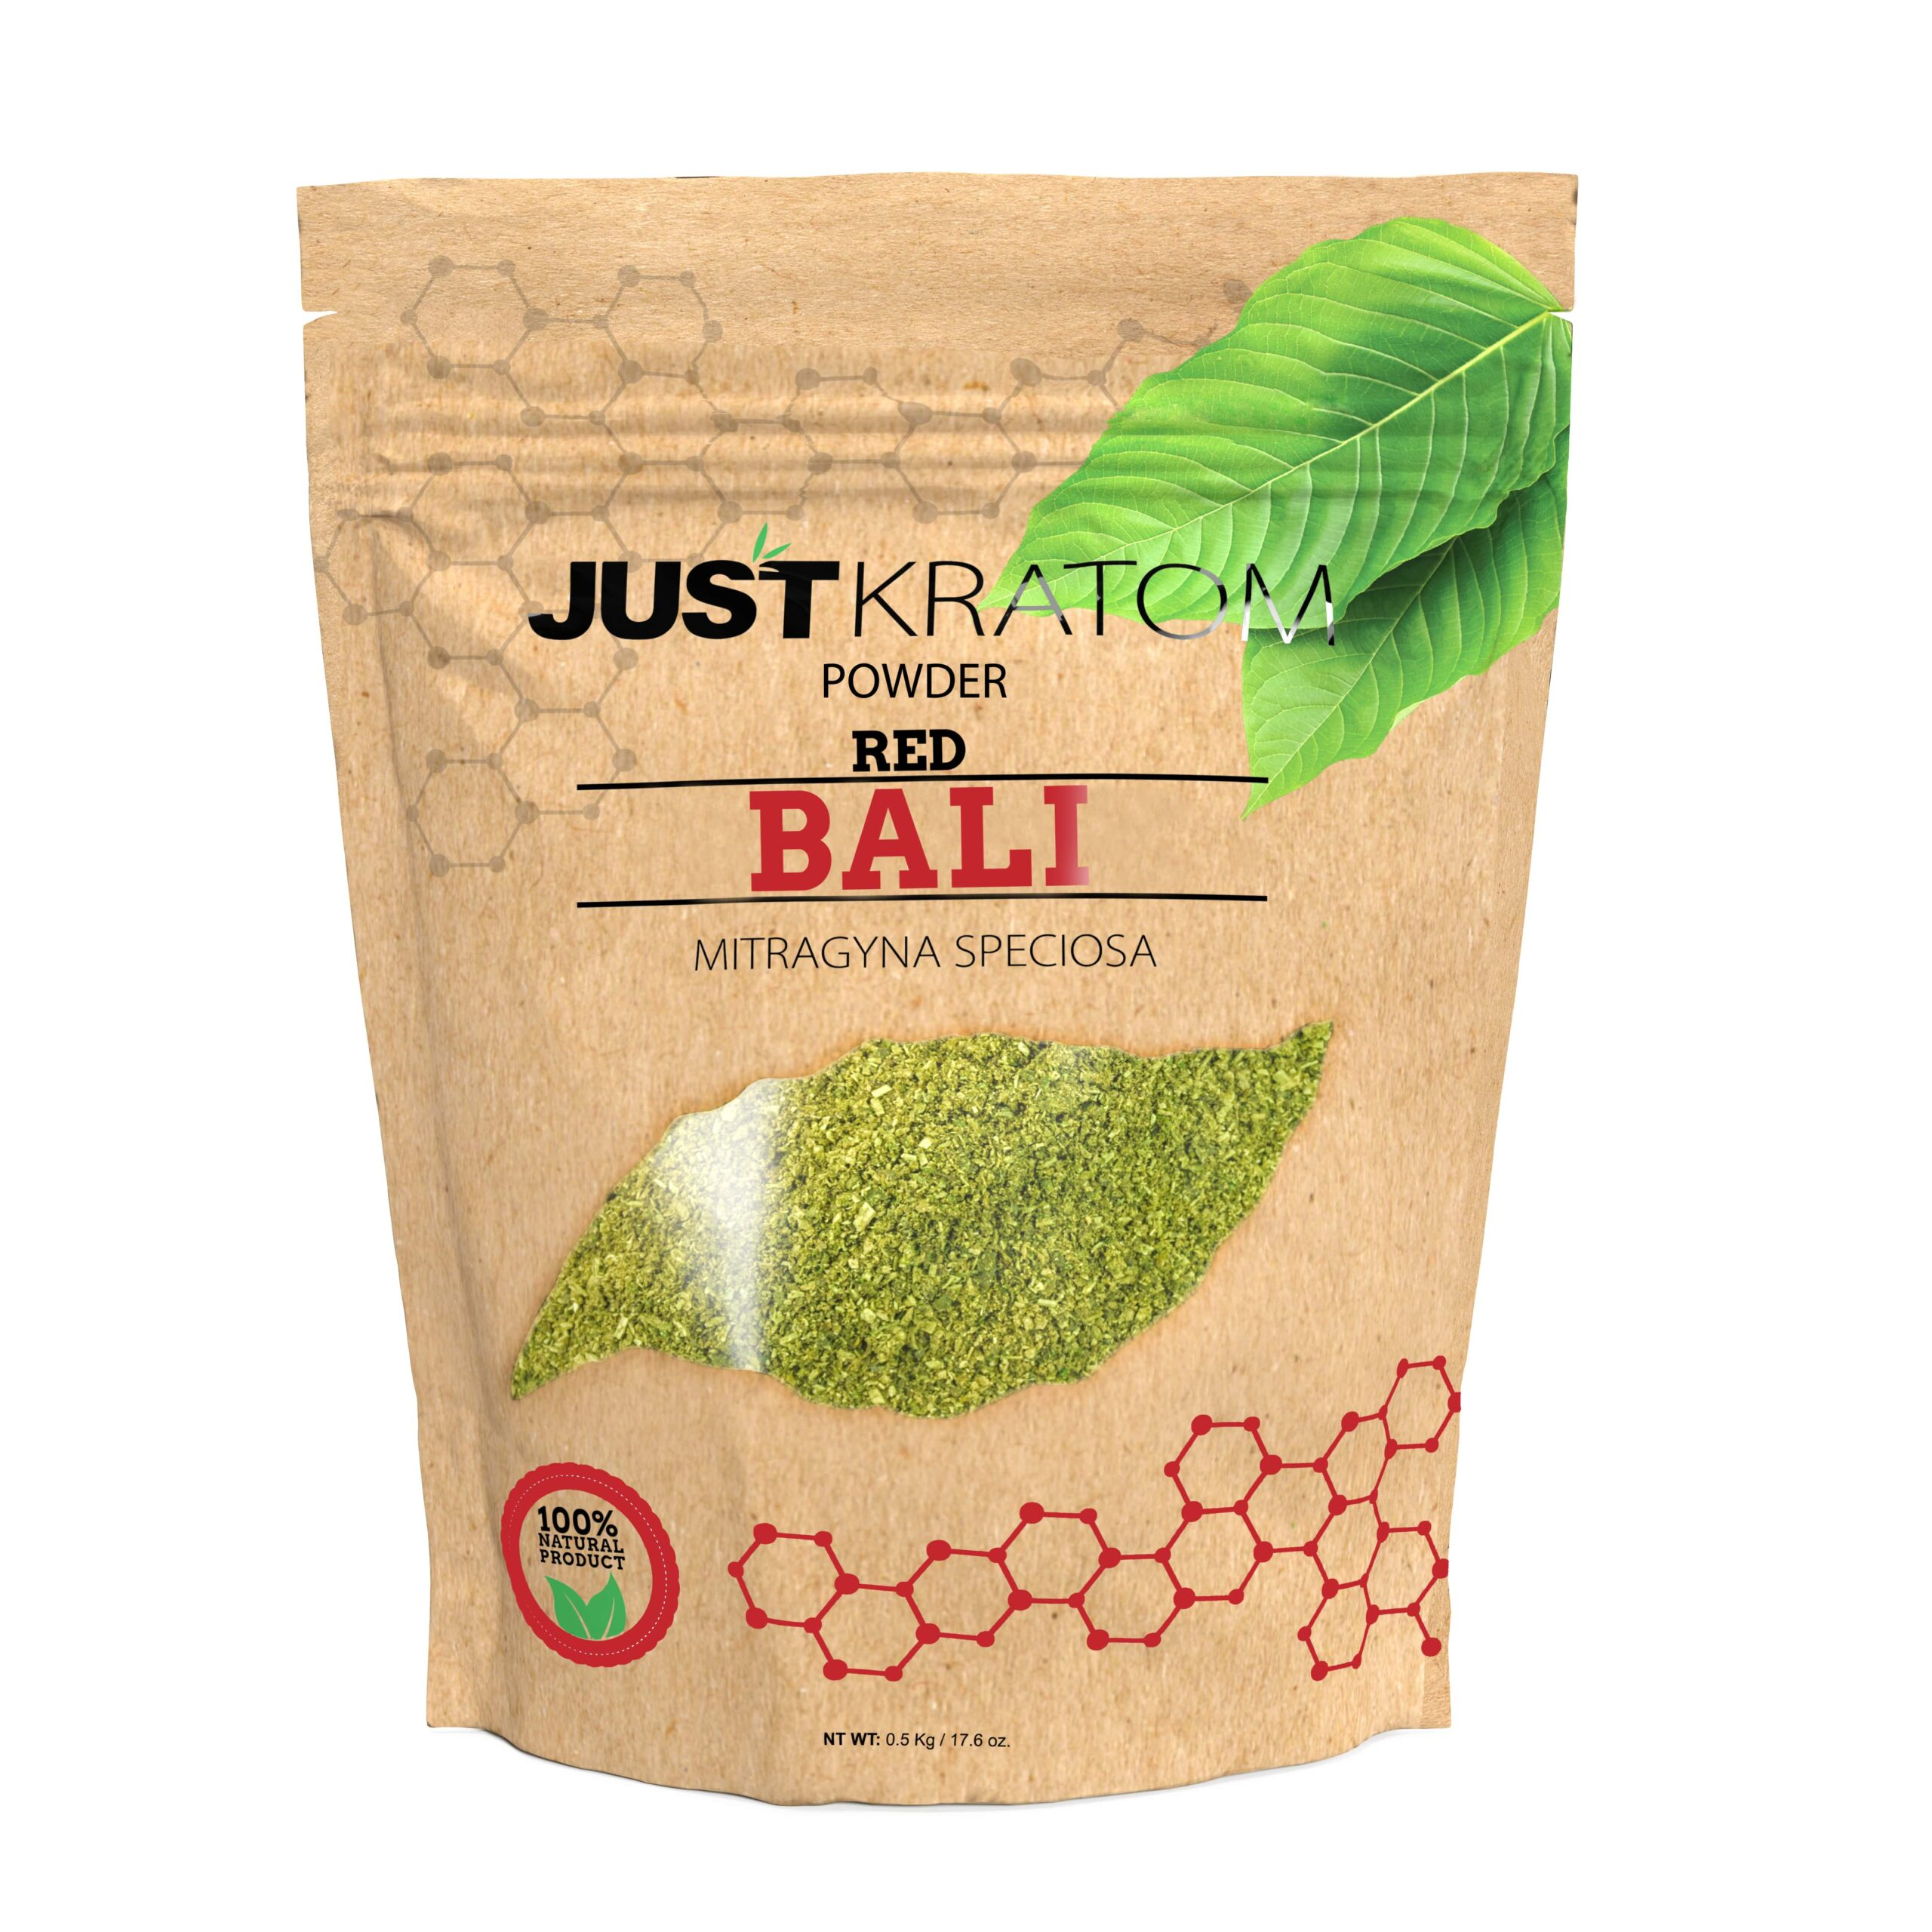 Where Can I Buy Kratom In Ohio